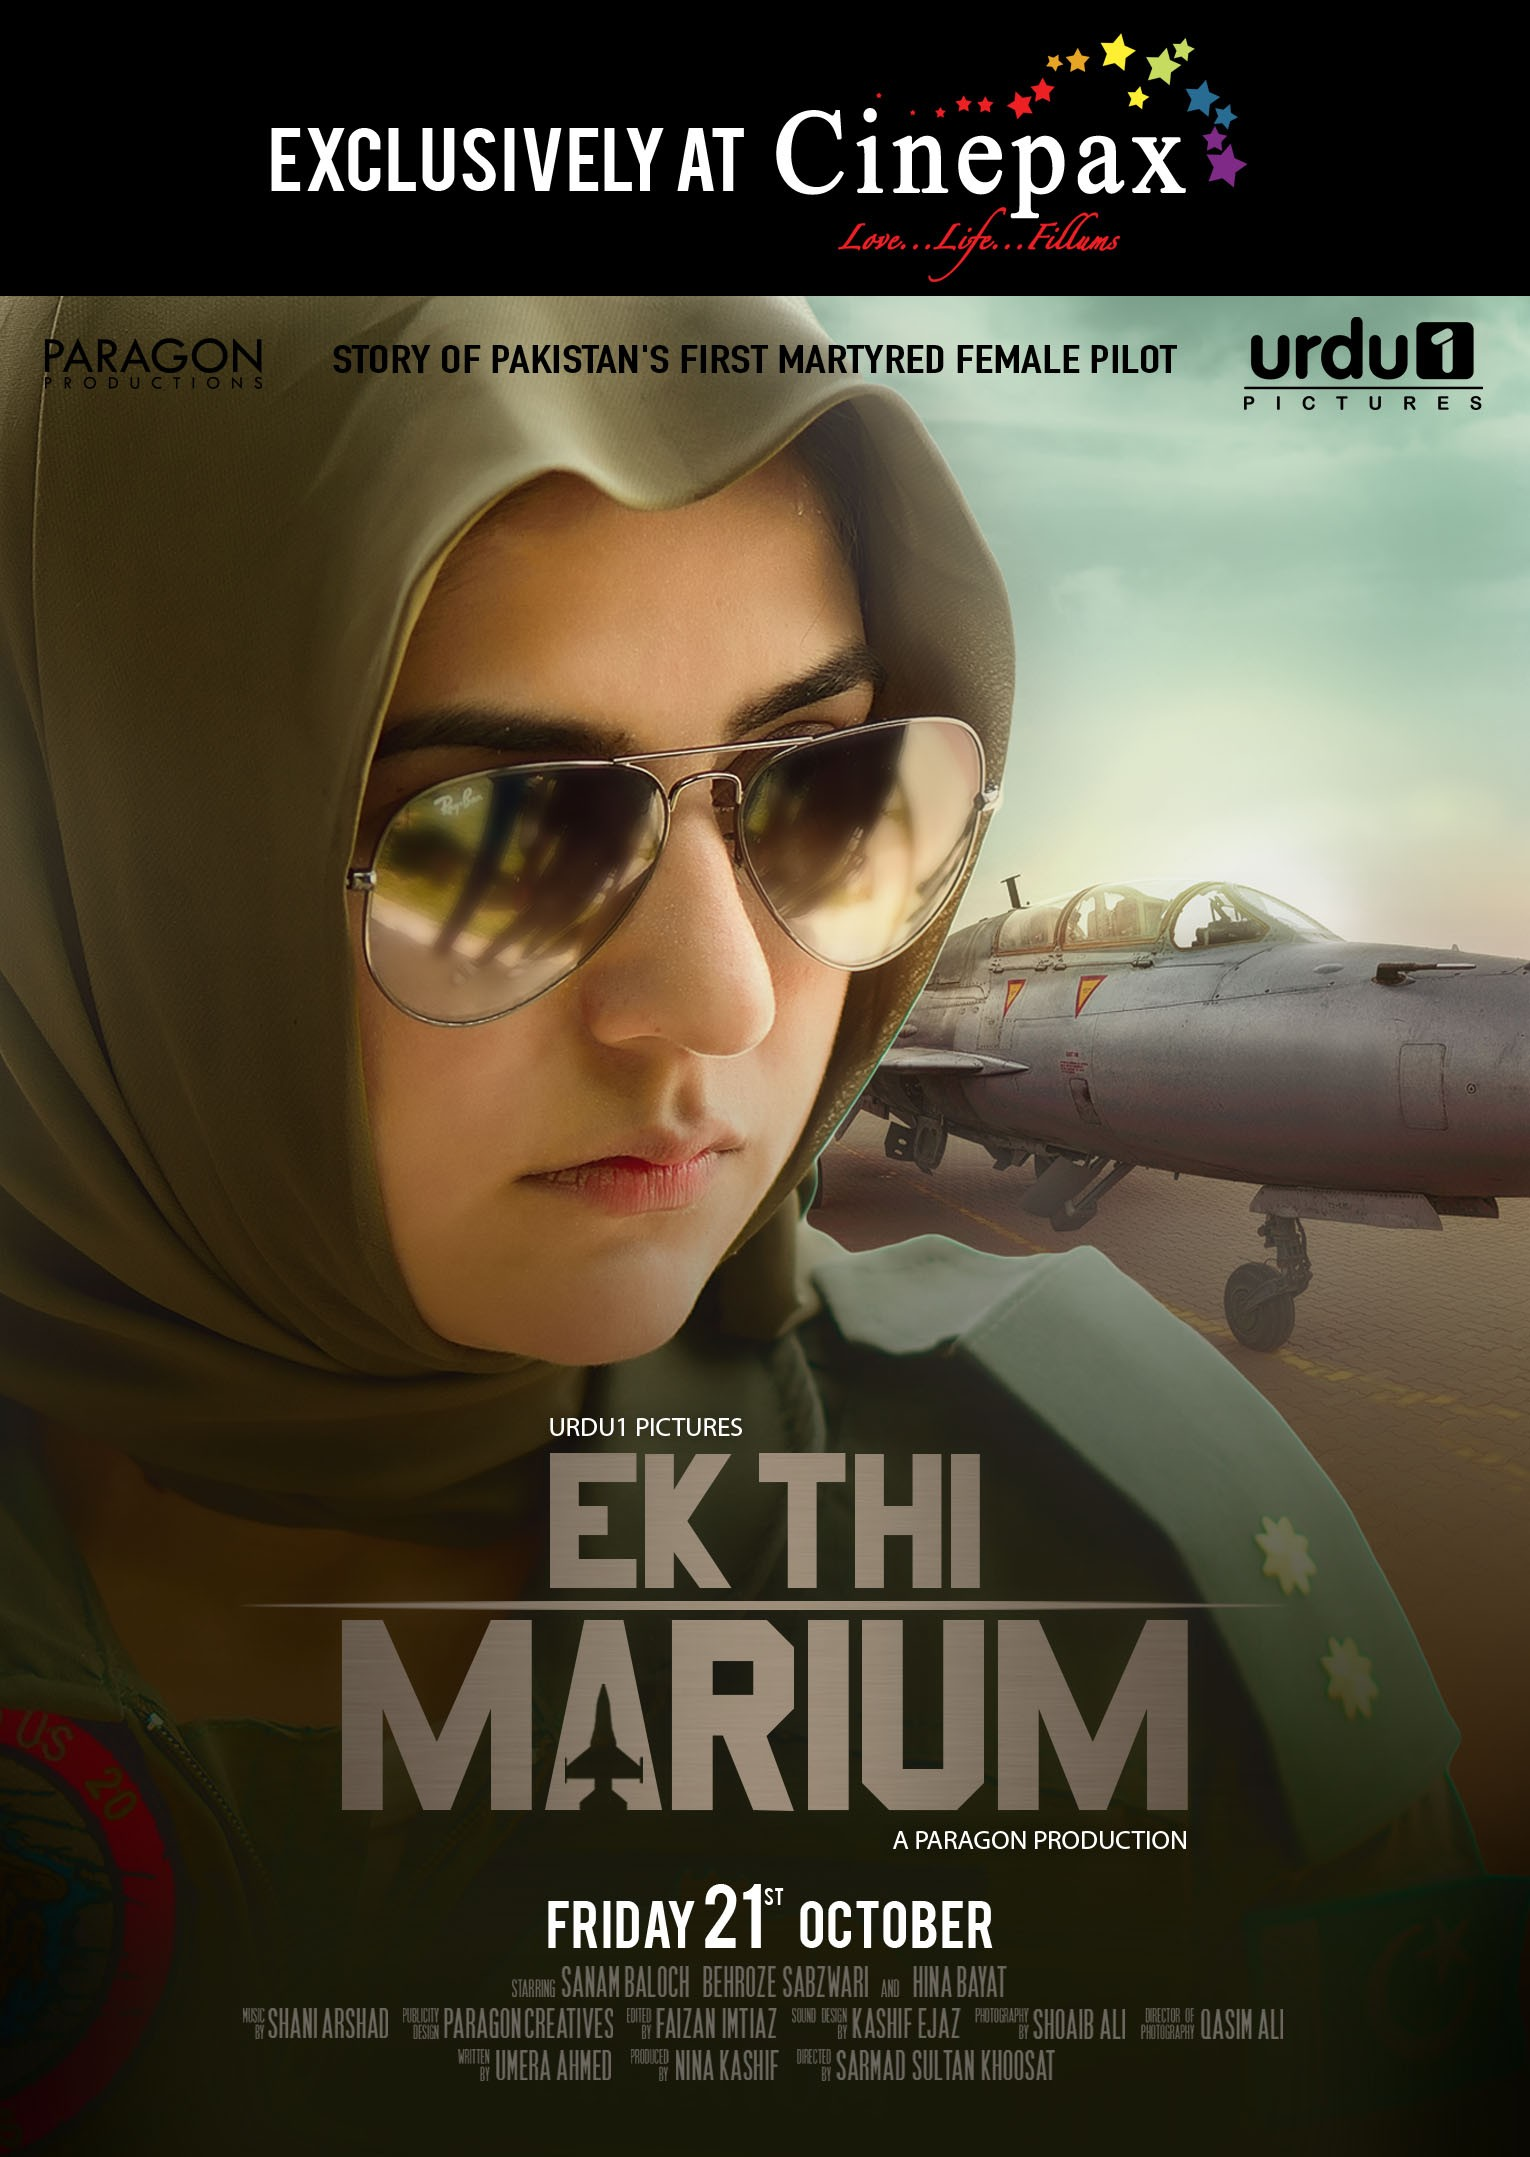 ek-thi-mariam-releasing-in-cinepax-cinema-across-pakistan